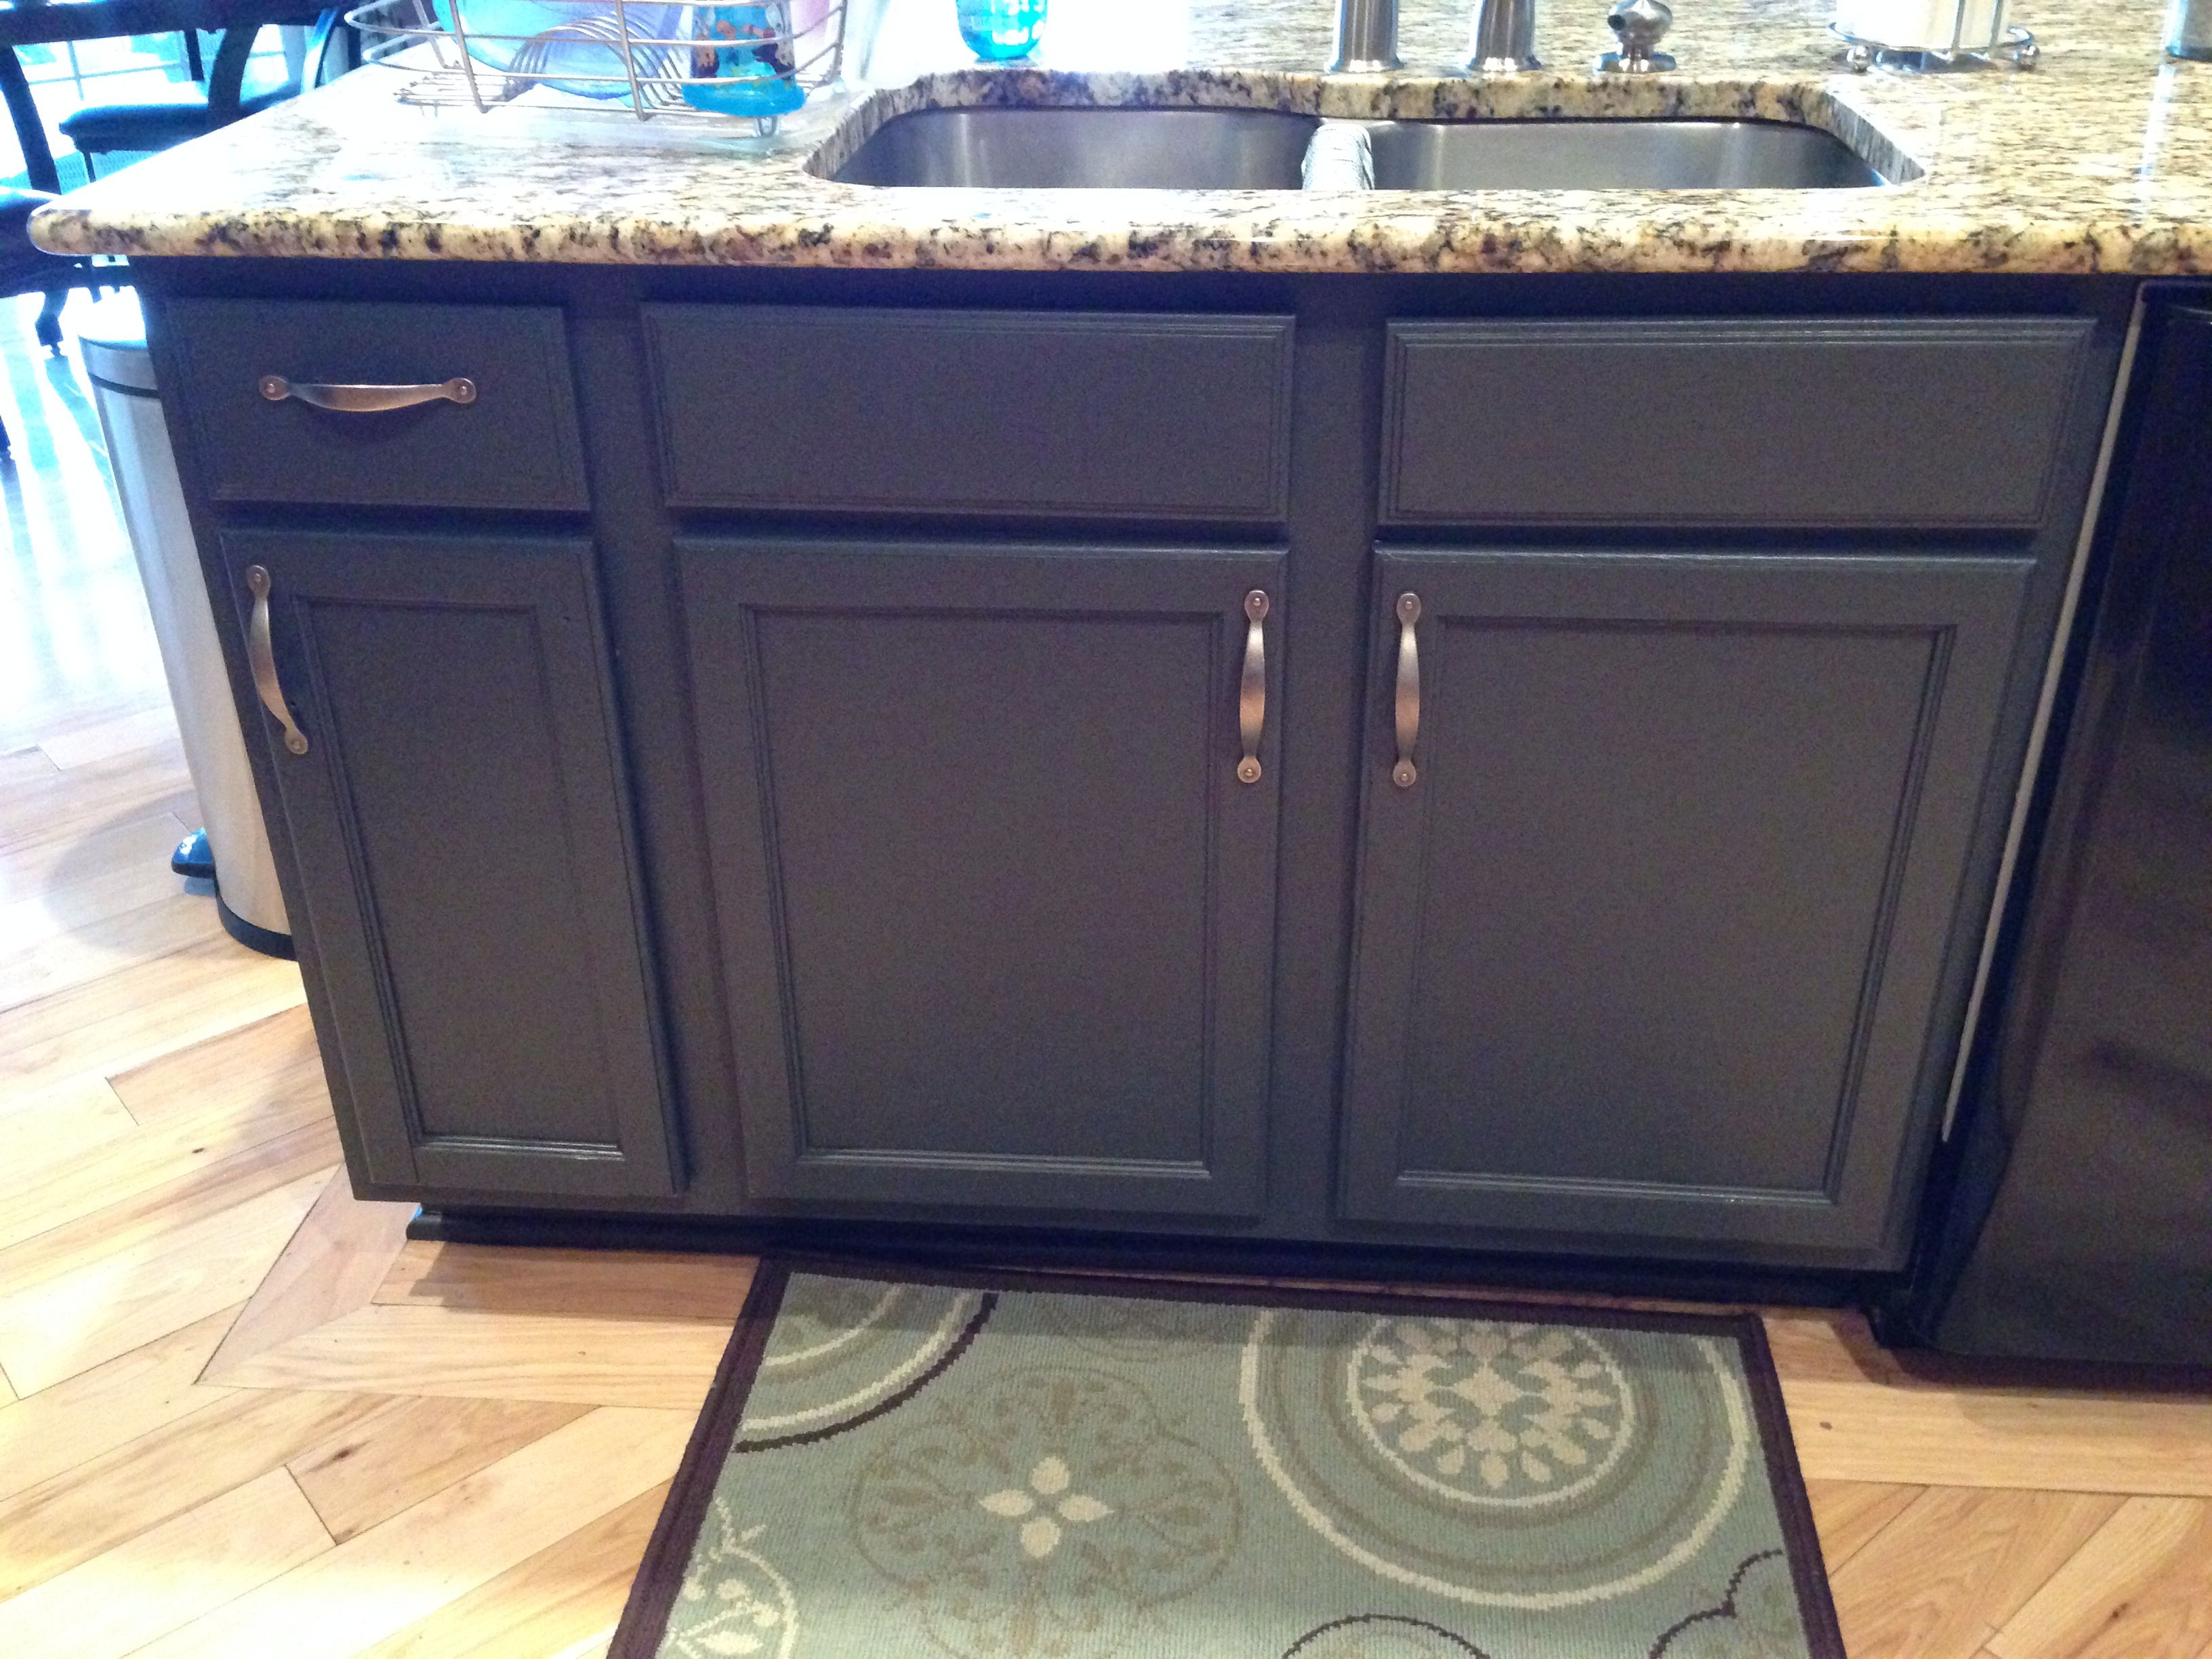 Repainted My Kitchen Island In Benjamin Moore Wrought Iron Diy Stairs Benjamin Moore Wrought Iron Wrought Iron Stairs